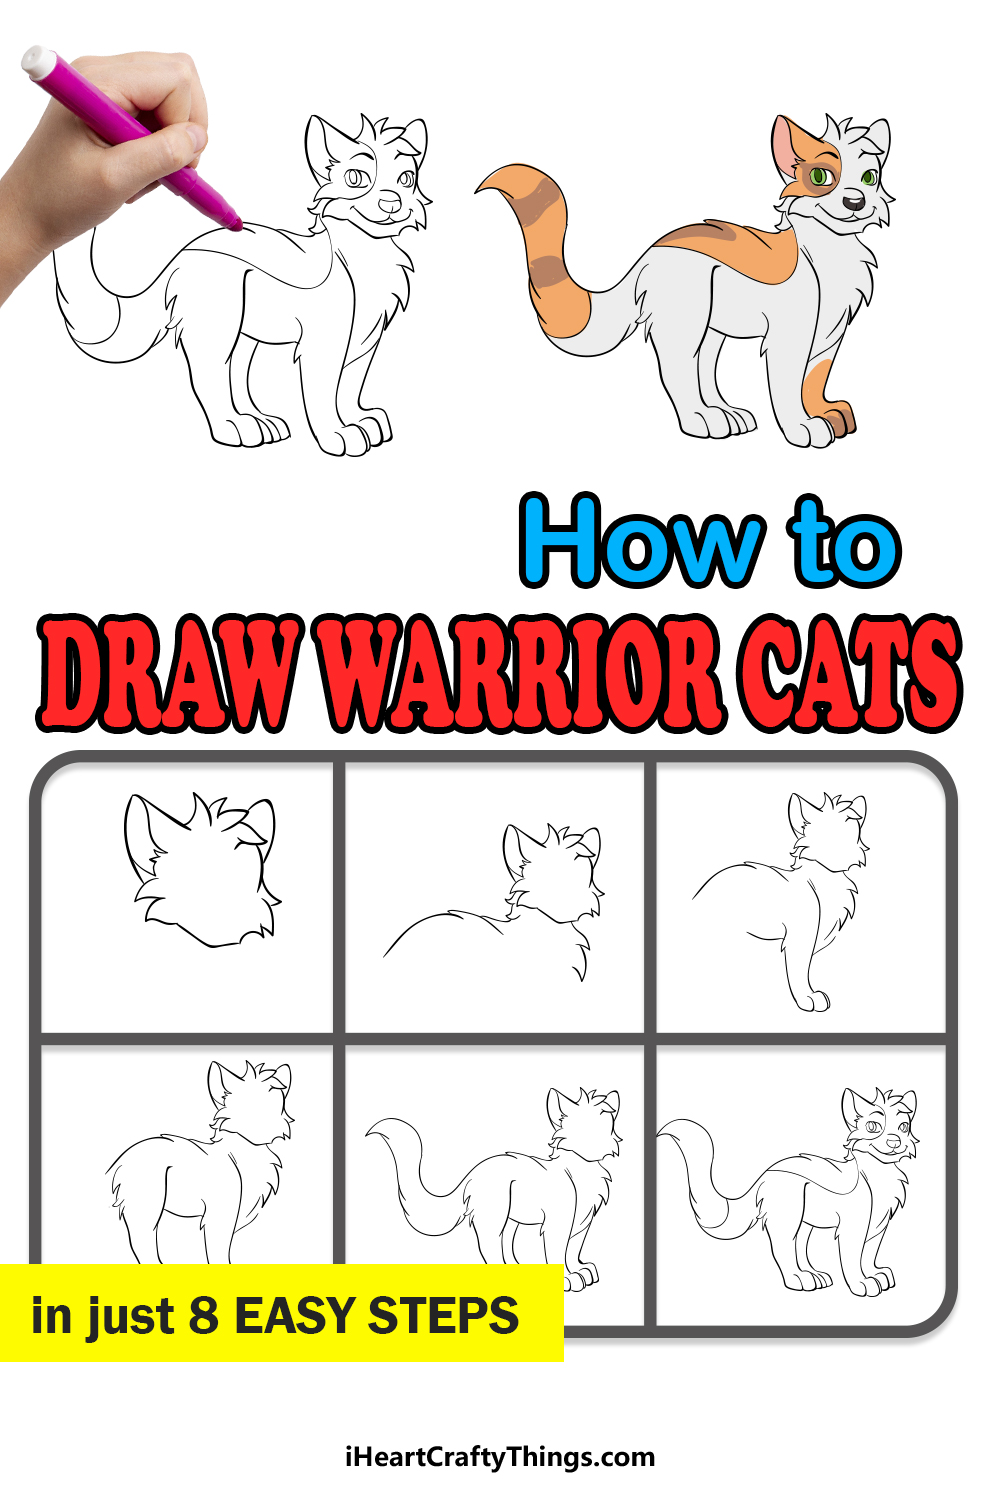 how to draw warrior cats in 8 easy steps